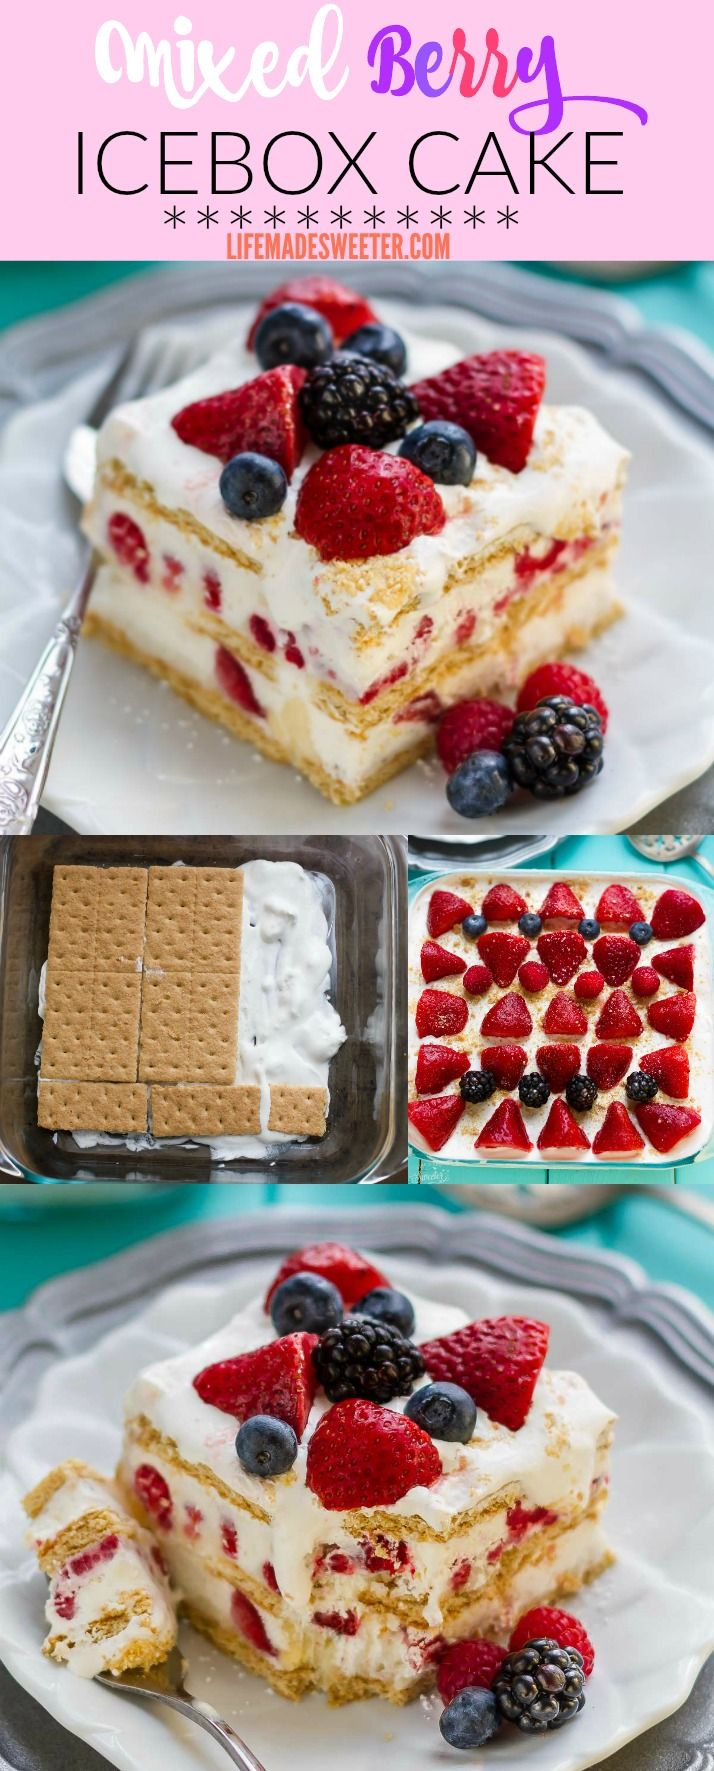 Top 25 ideas about Icebox Cake Recipes on Pinterest ...